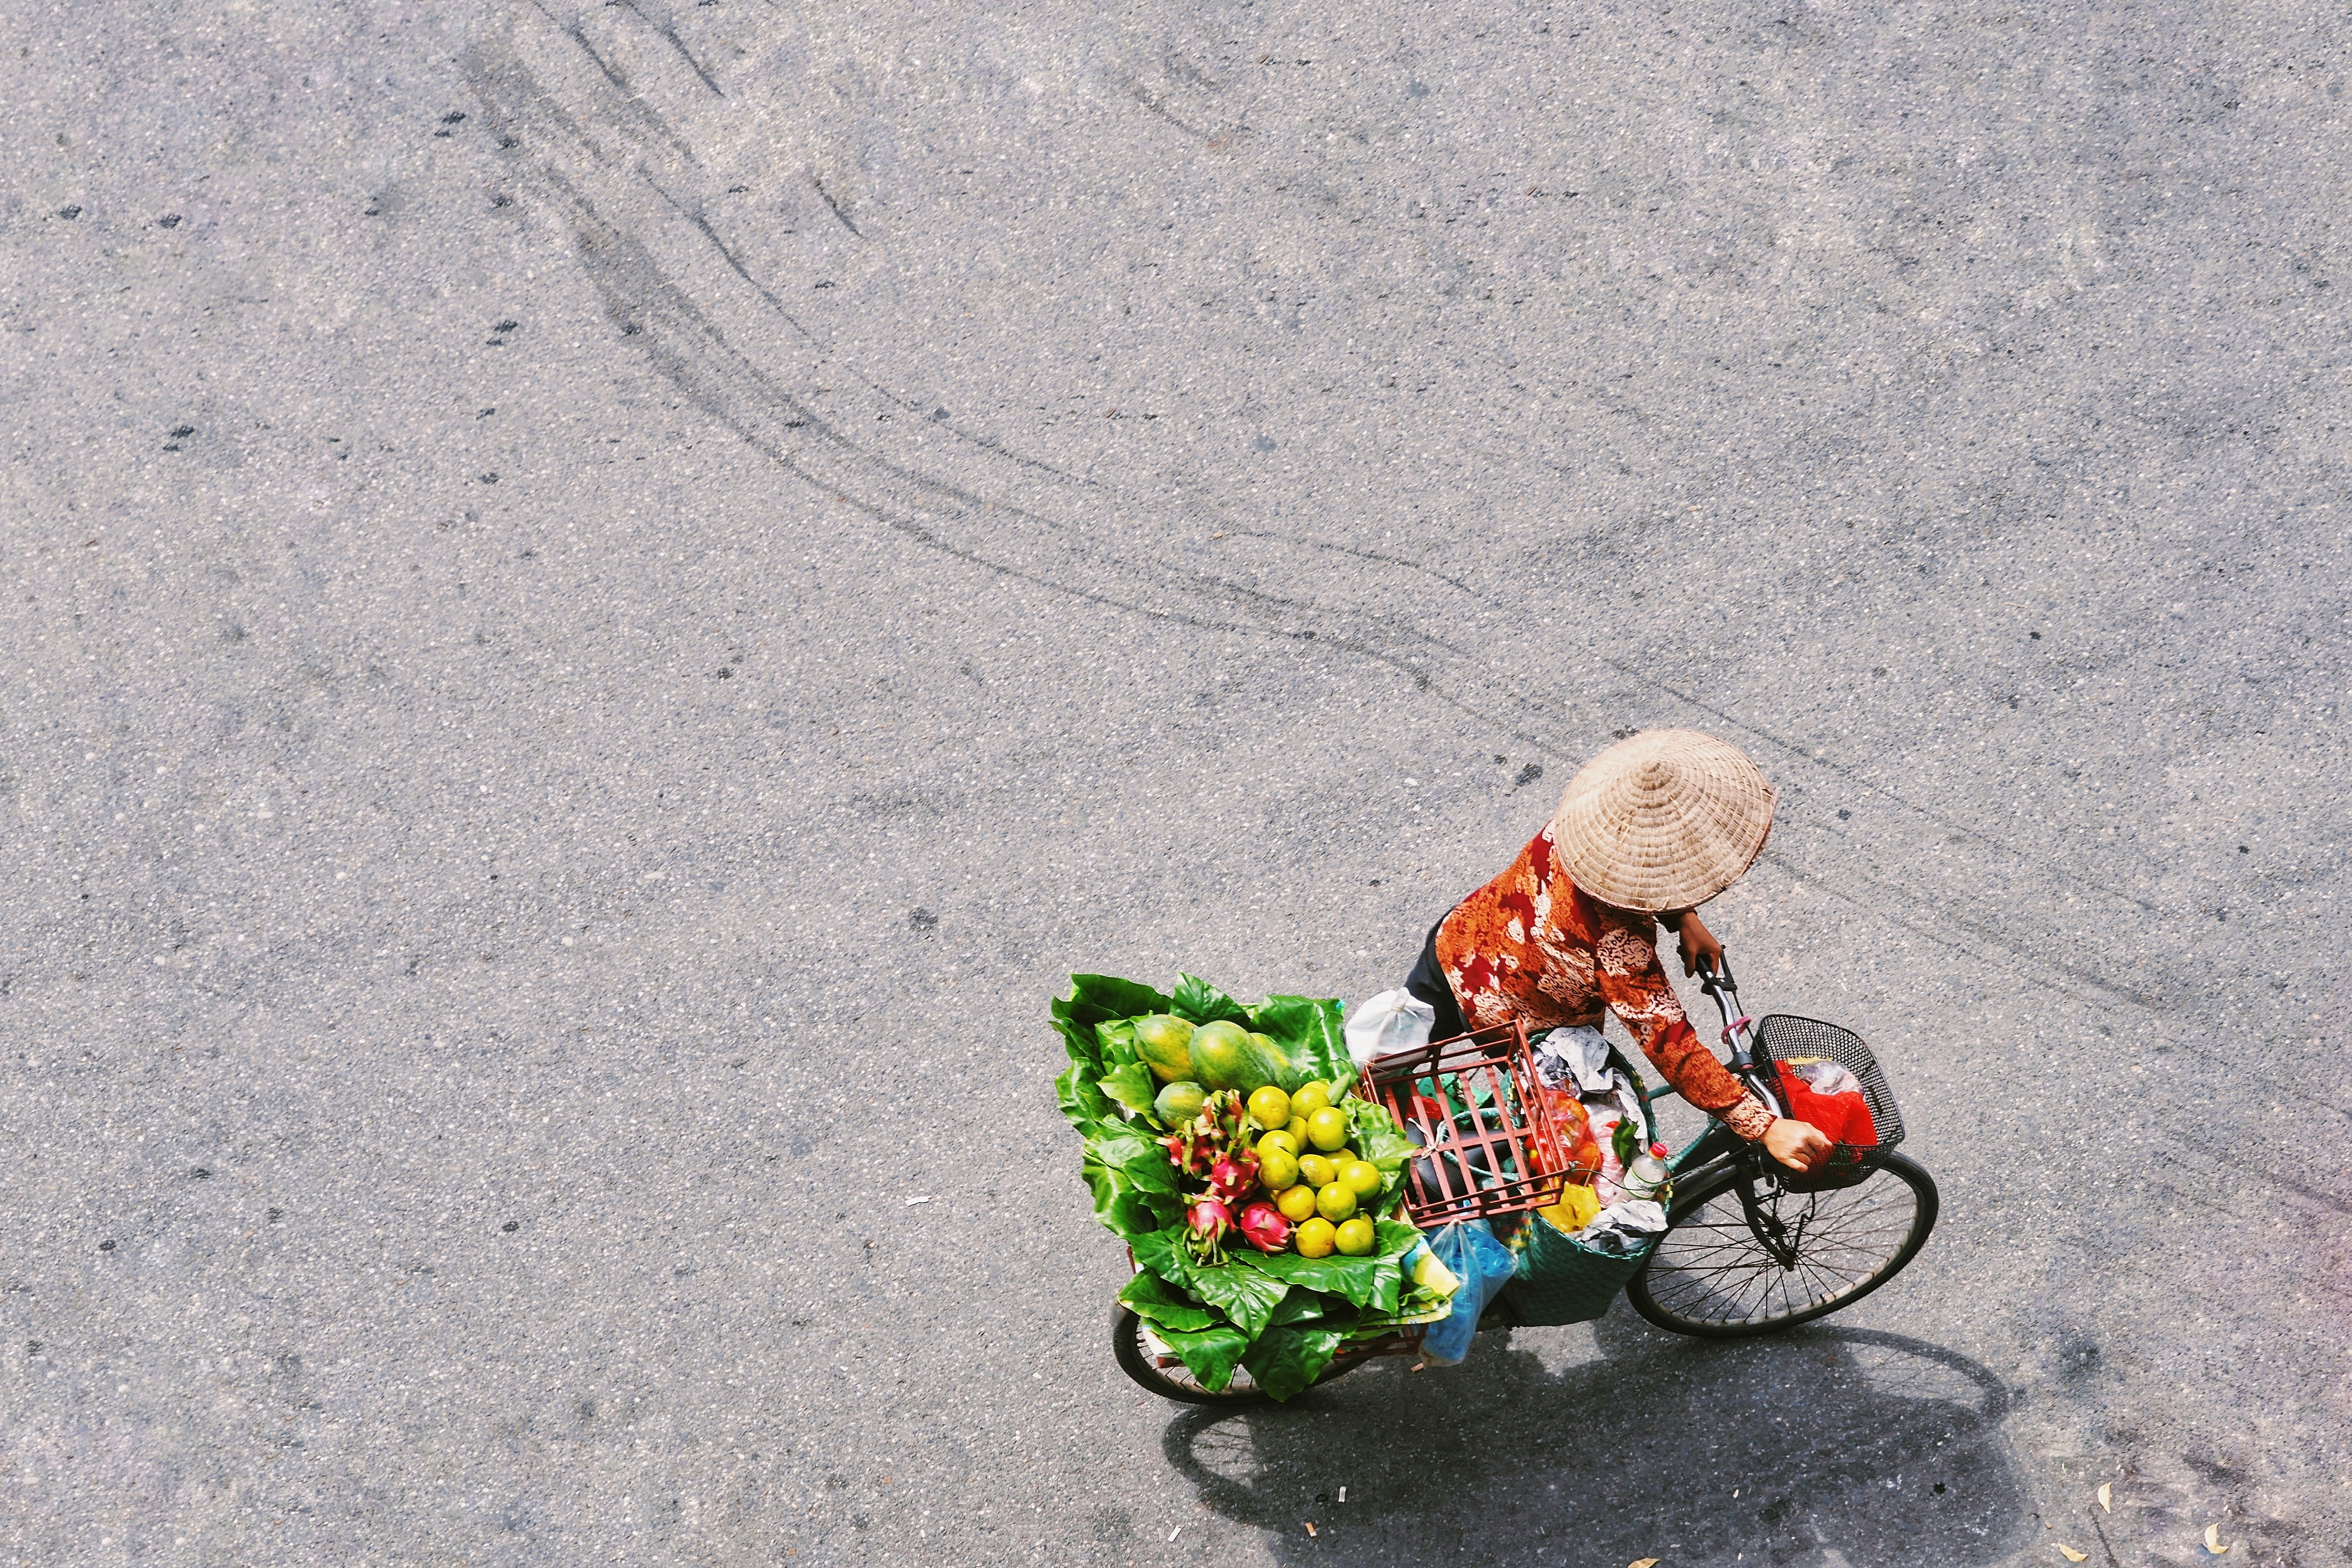 person carrying black bike with basket of fruits